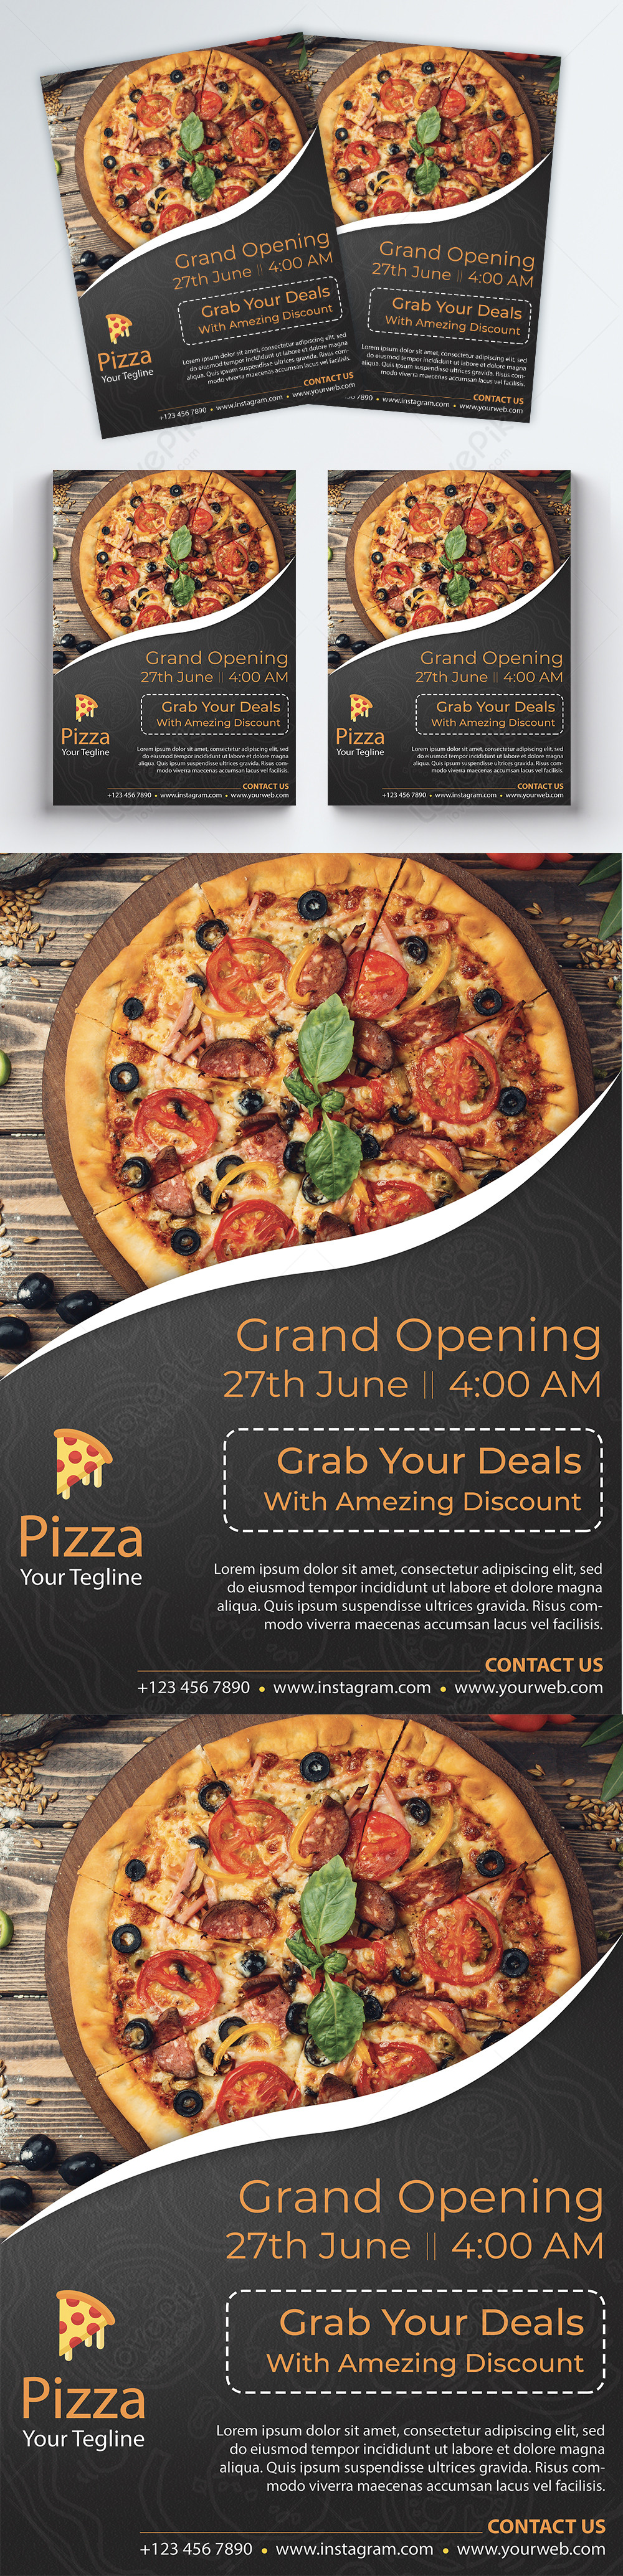 Grand Opening Pizza Restaurant Flyer Template Image Picture Free Download 450007618 Lovepik Com